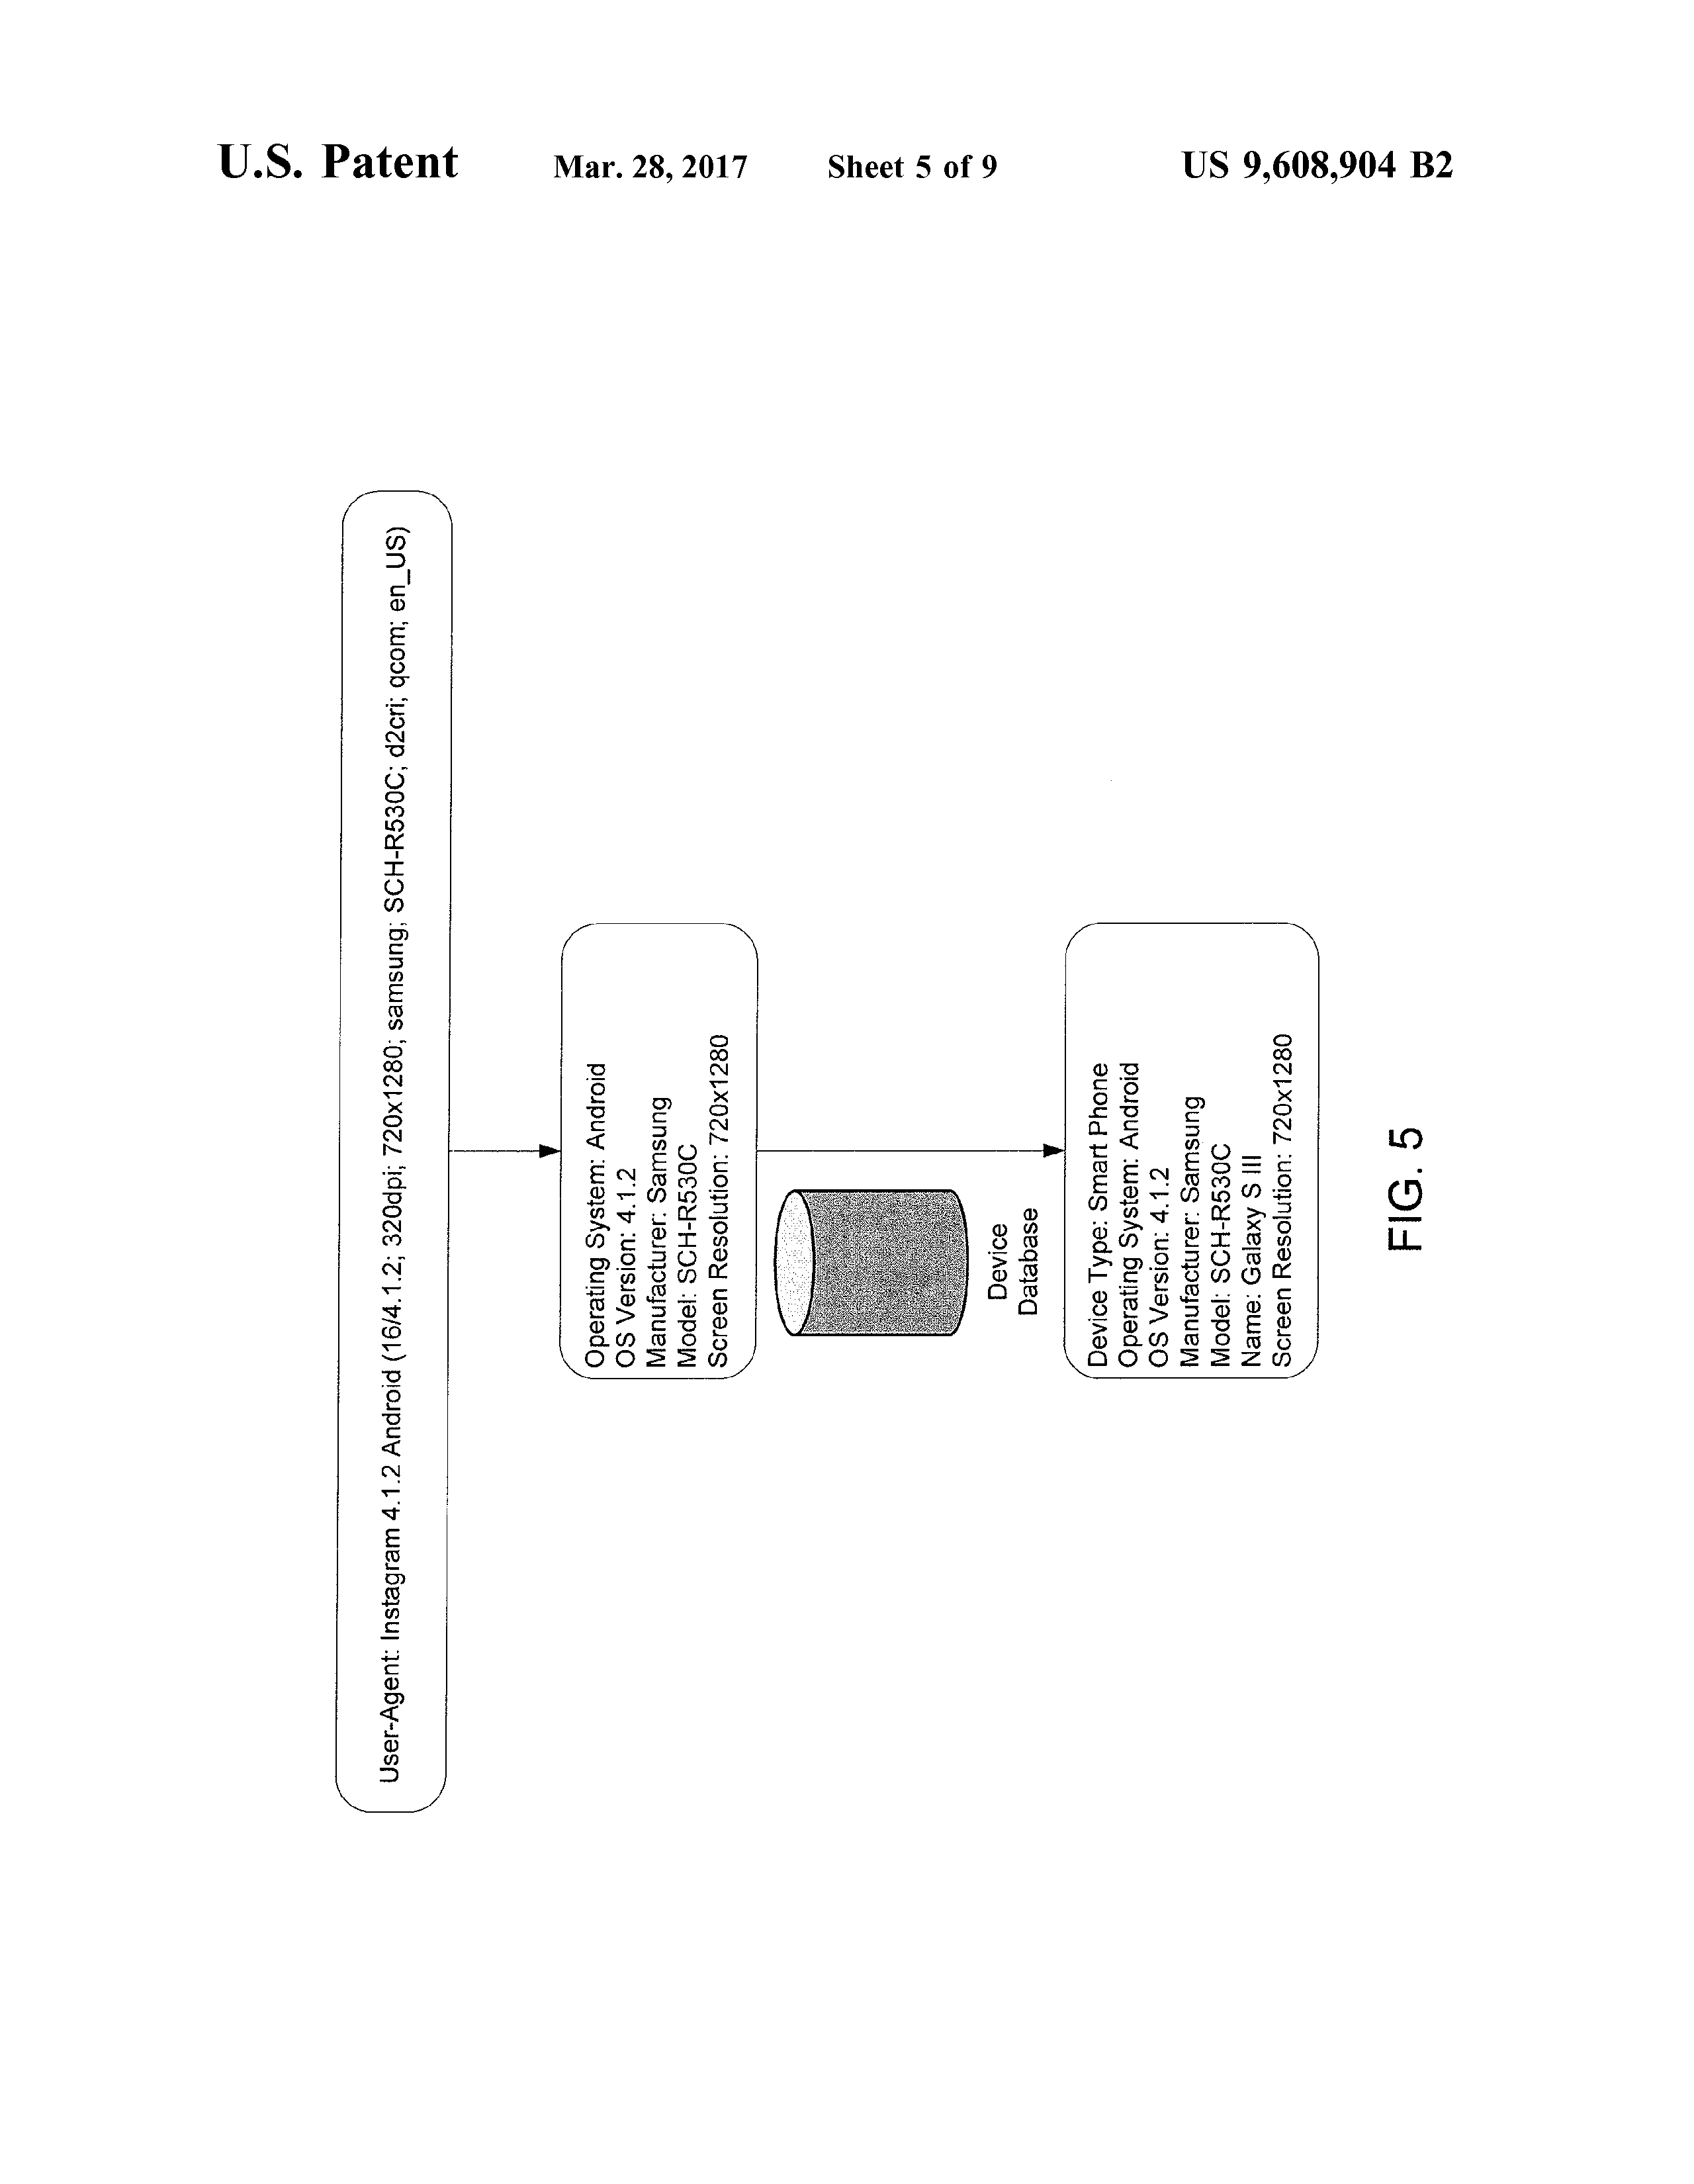 US 9608904 B2 - System And Method For Analyzing Devices